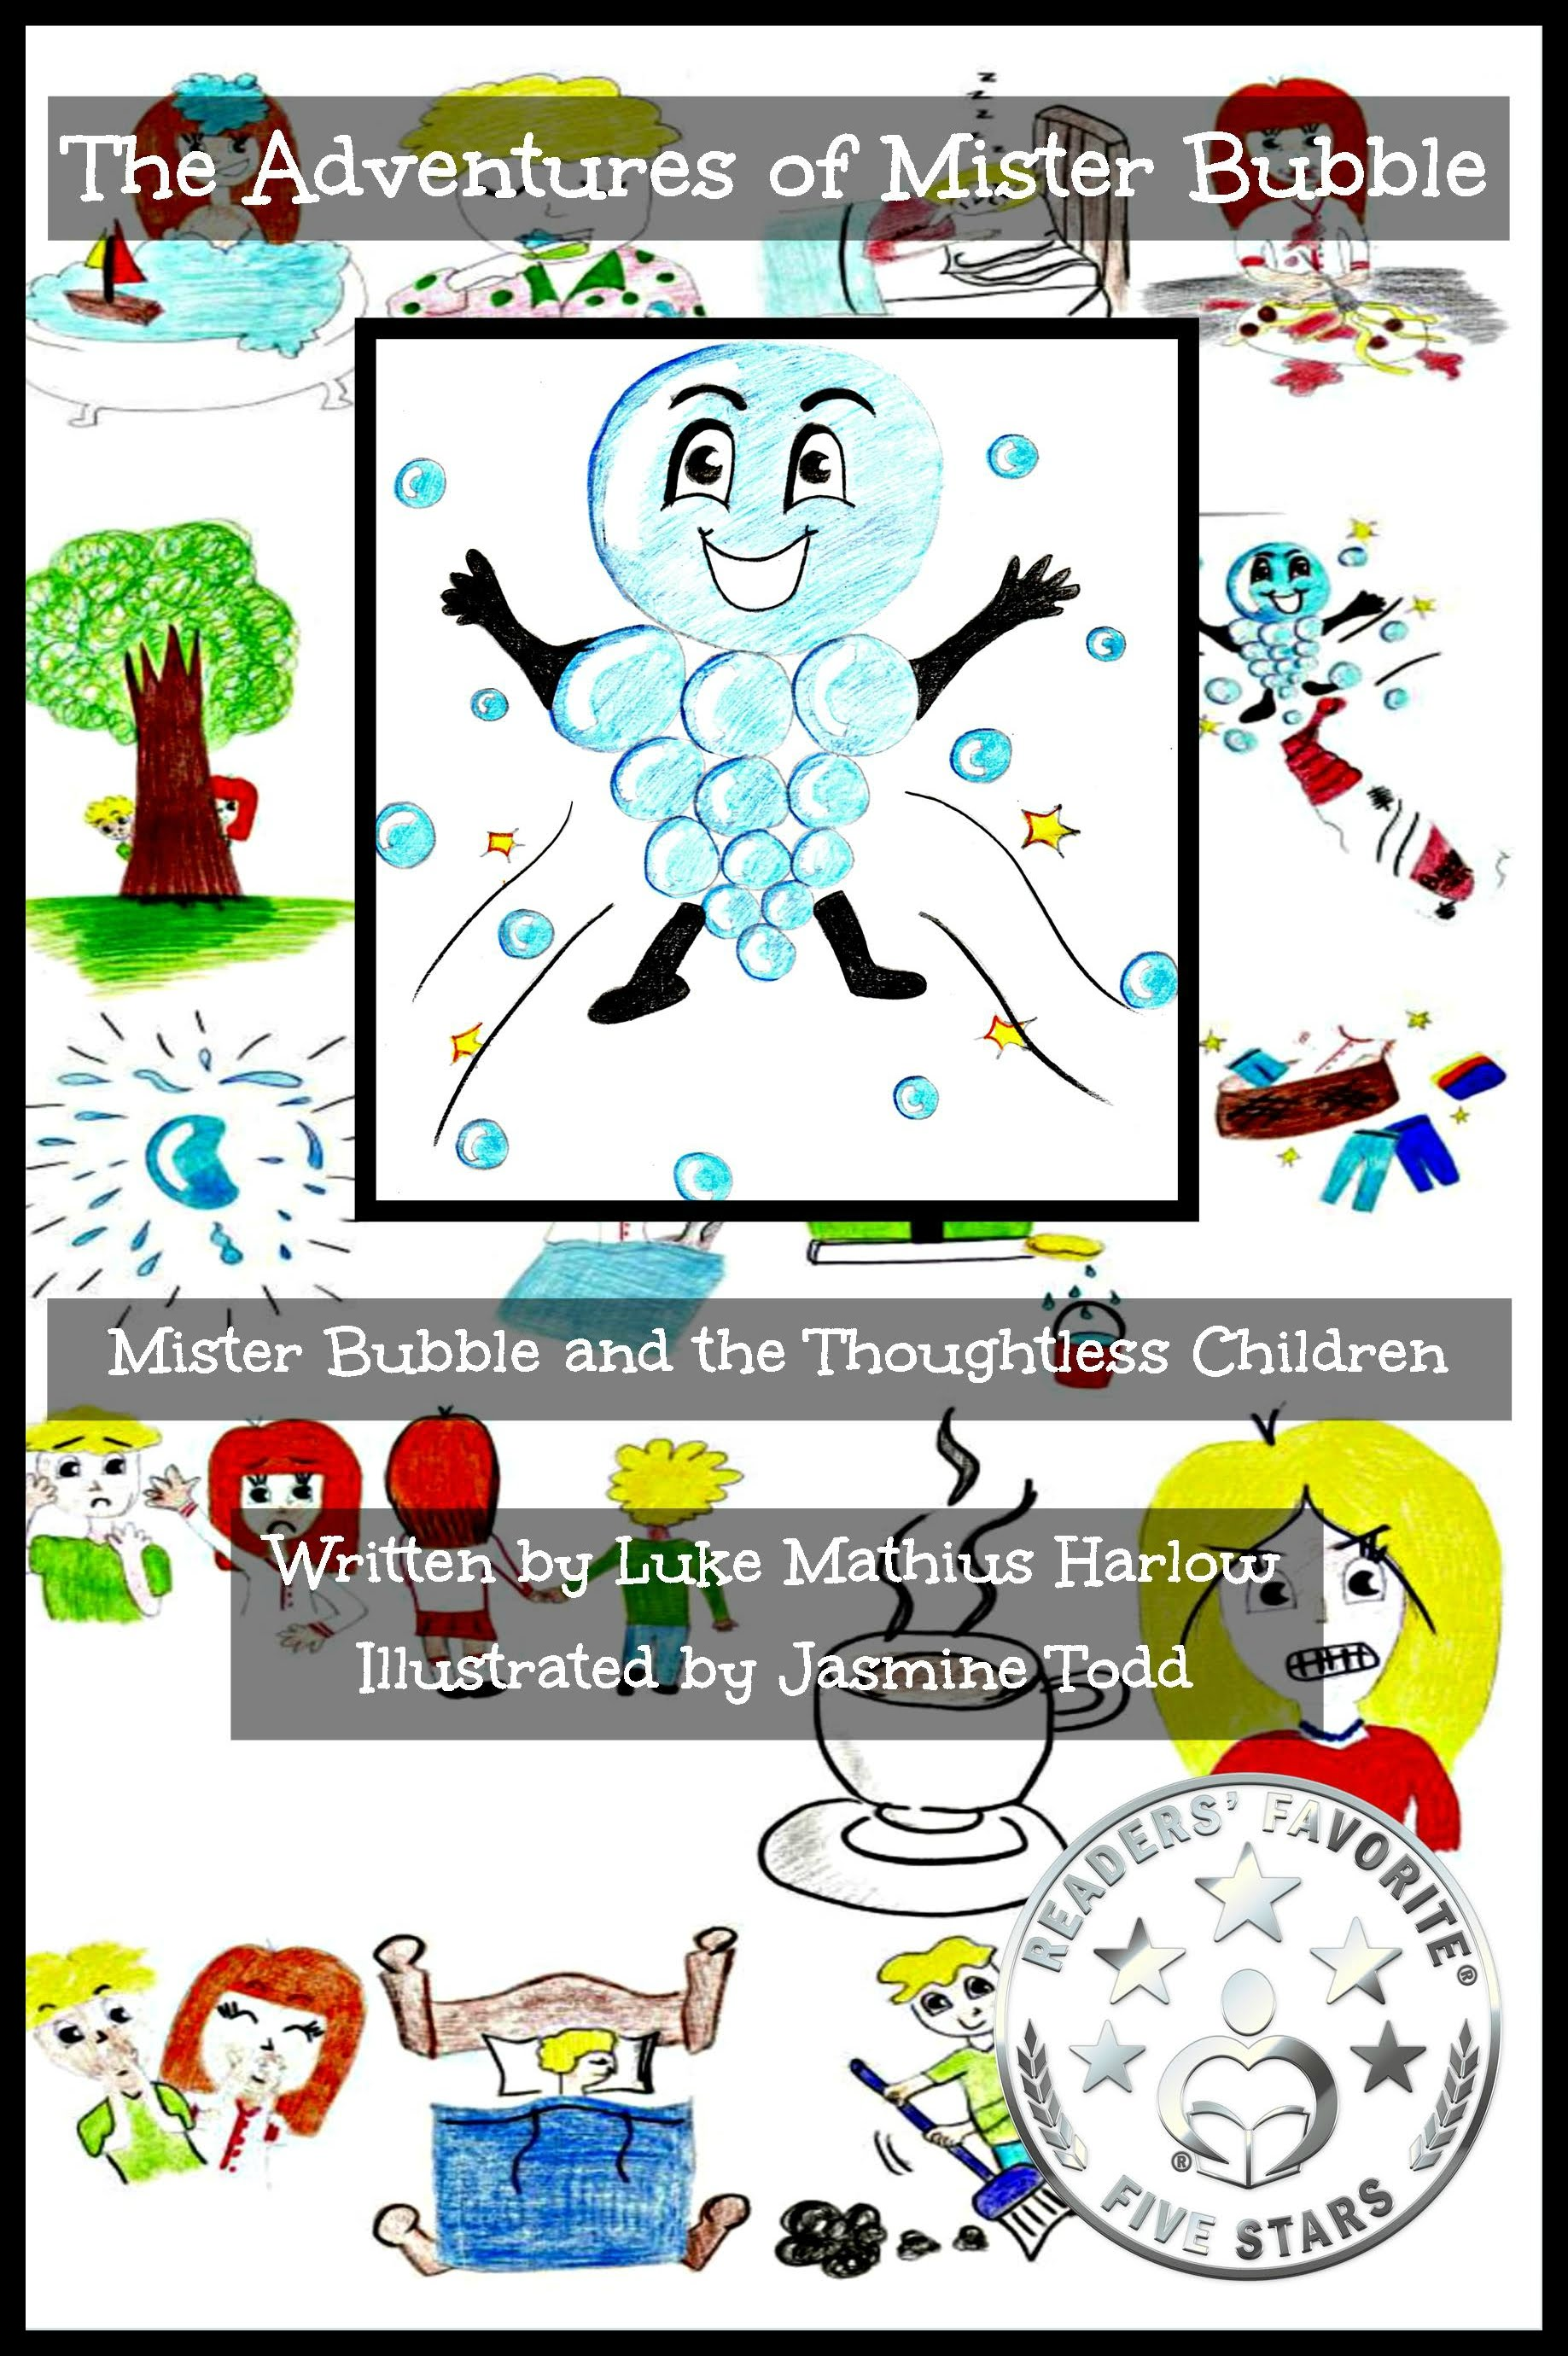 http://www.amazon.co.uk/Adventures-Mister-Bubble-Thoughtless-Children/dp/1502350858/ref=sr_1_2?ie=UTF8&qid=1441369797&sr=8-2&keywords=luke+mathius+harlow